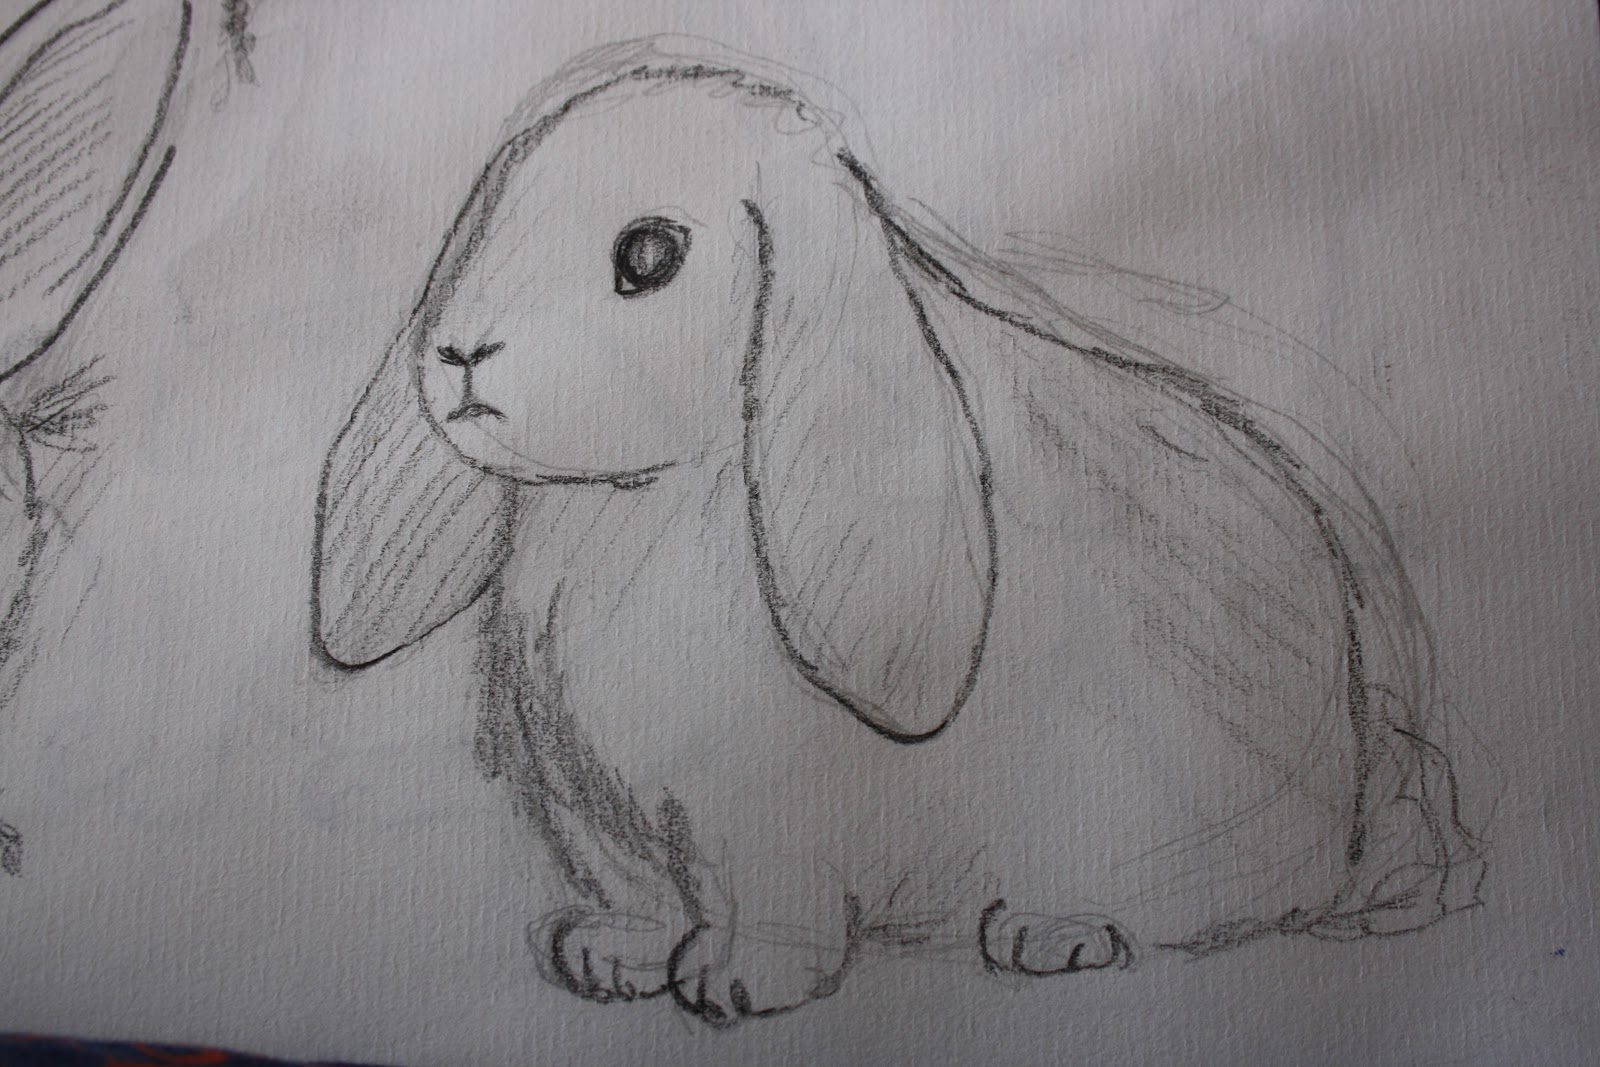 Uncategorized Drawn Pictures Of Animals sarah minshall illustration observational drawing once i have drawn a variety of the more common animals plan to experiment with exotic creatures that children perhaps know very little abou